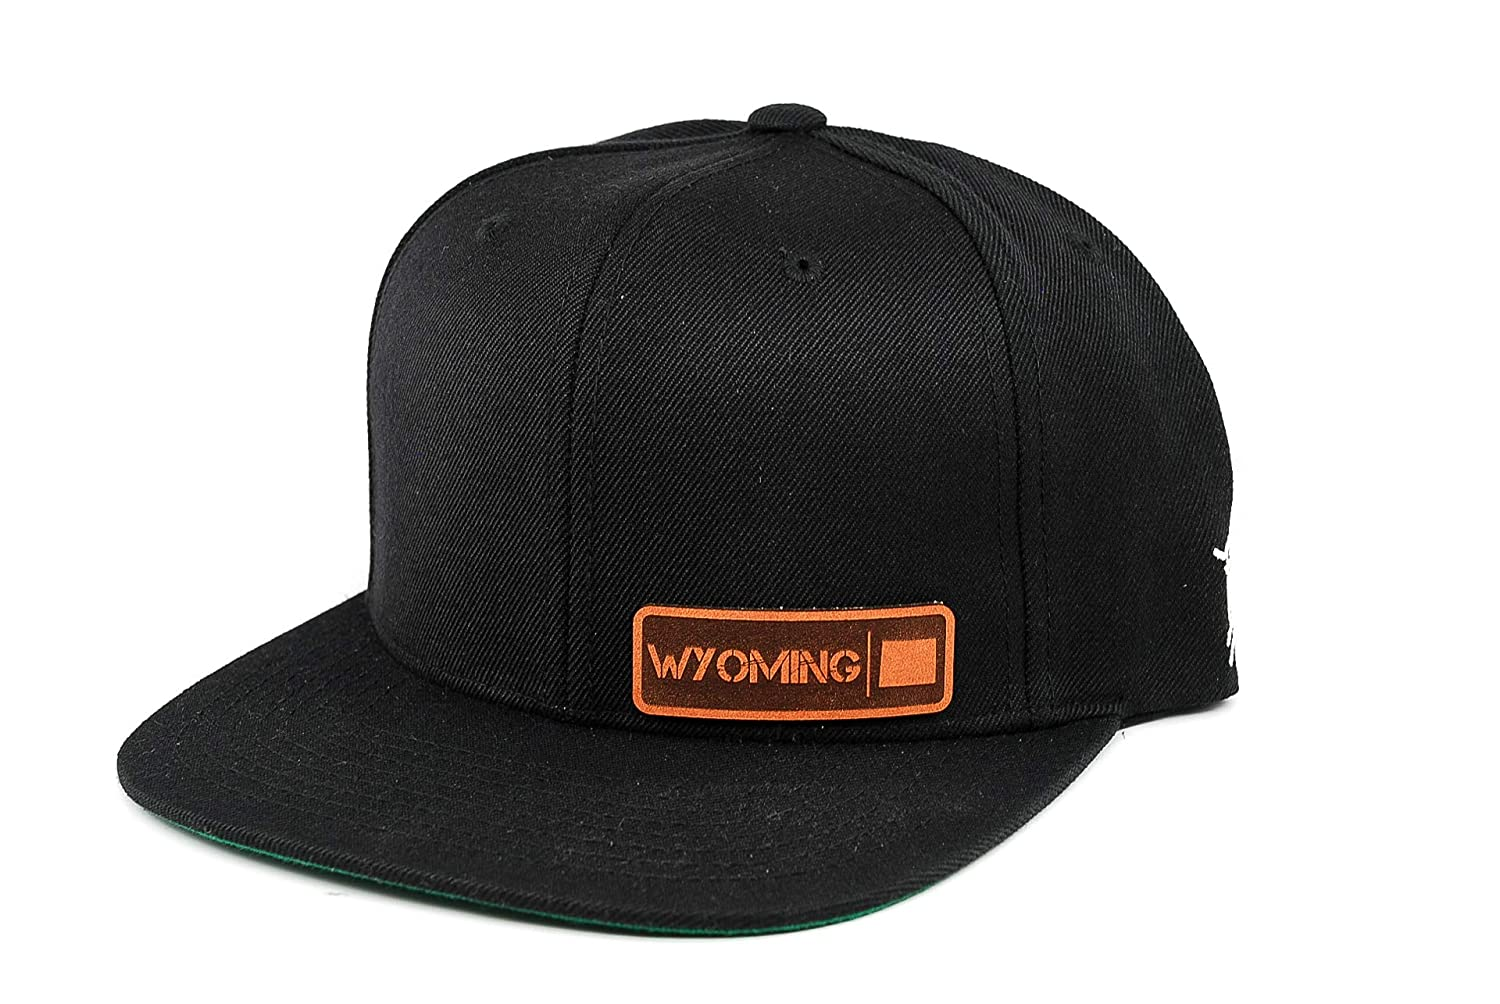 Branded Bills /'Wyoming Native Leather Patch Snapback Hat OSFA//Black